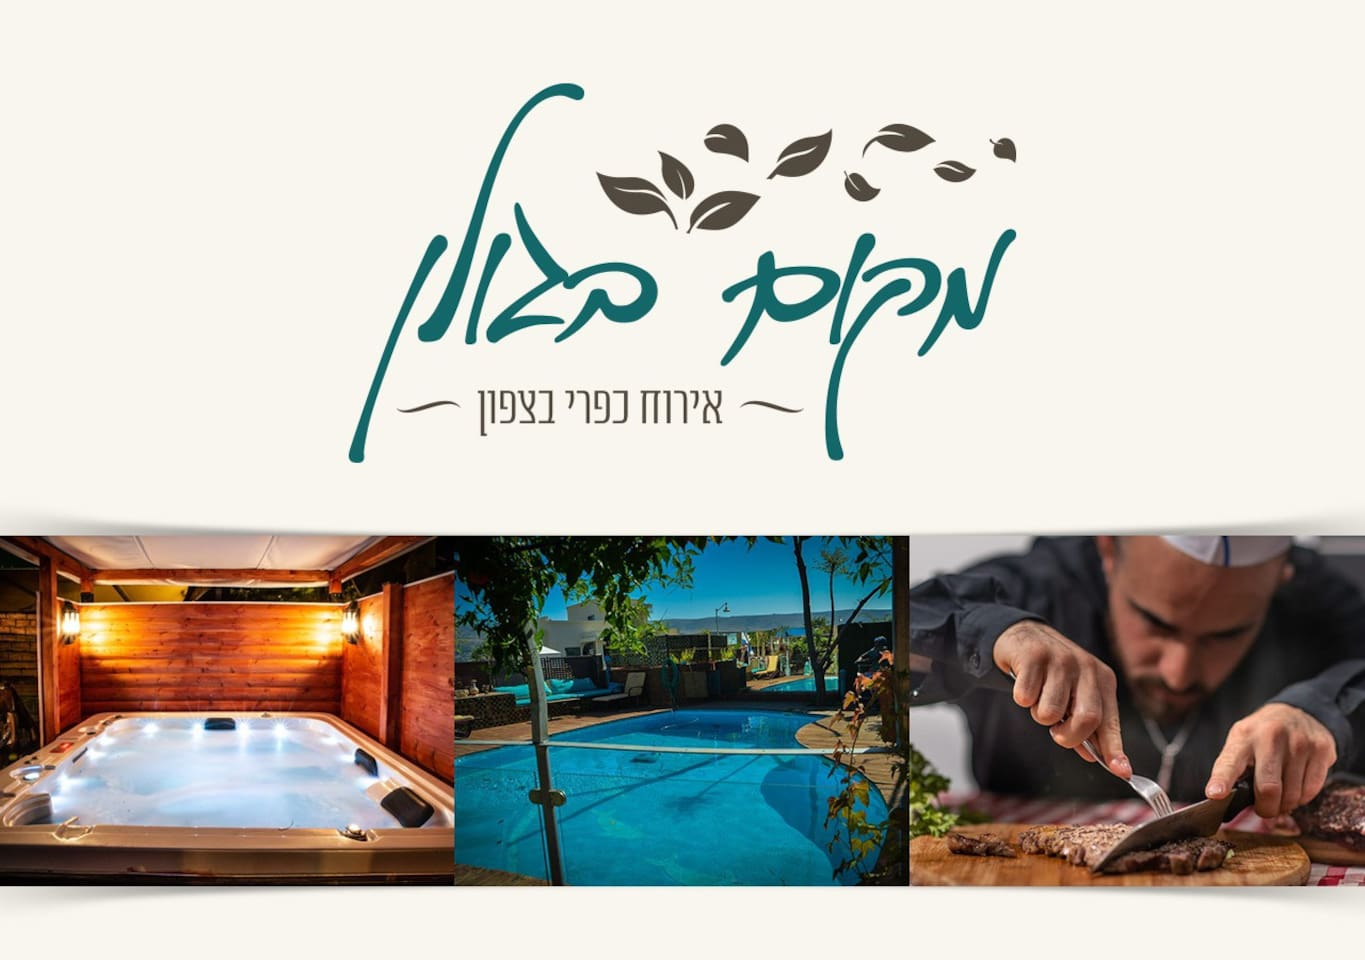 Welcome to makom bagolan. Guest rooms in rustic atmosphere. After 5 years of experience with lots of customers. We discovered the formula of how to make our guests get the best vacation experience.